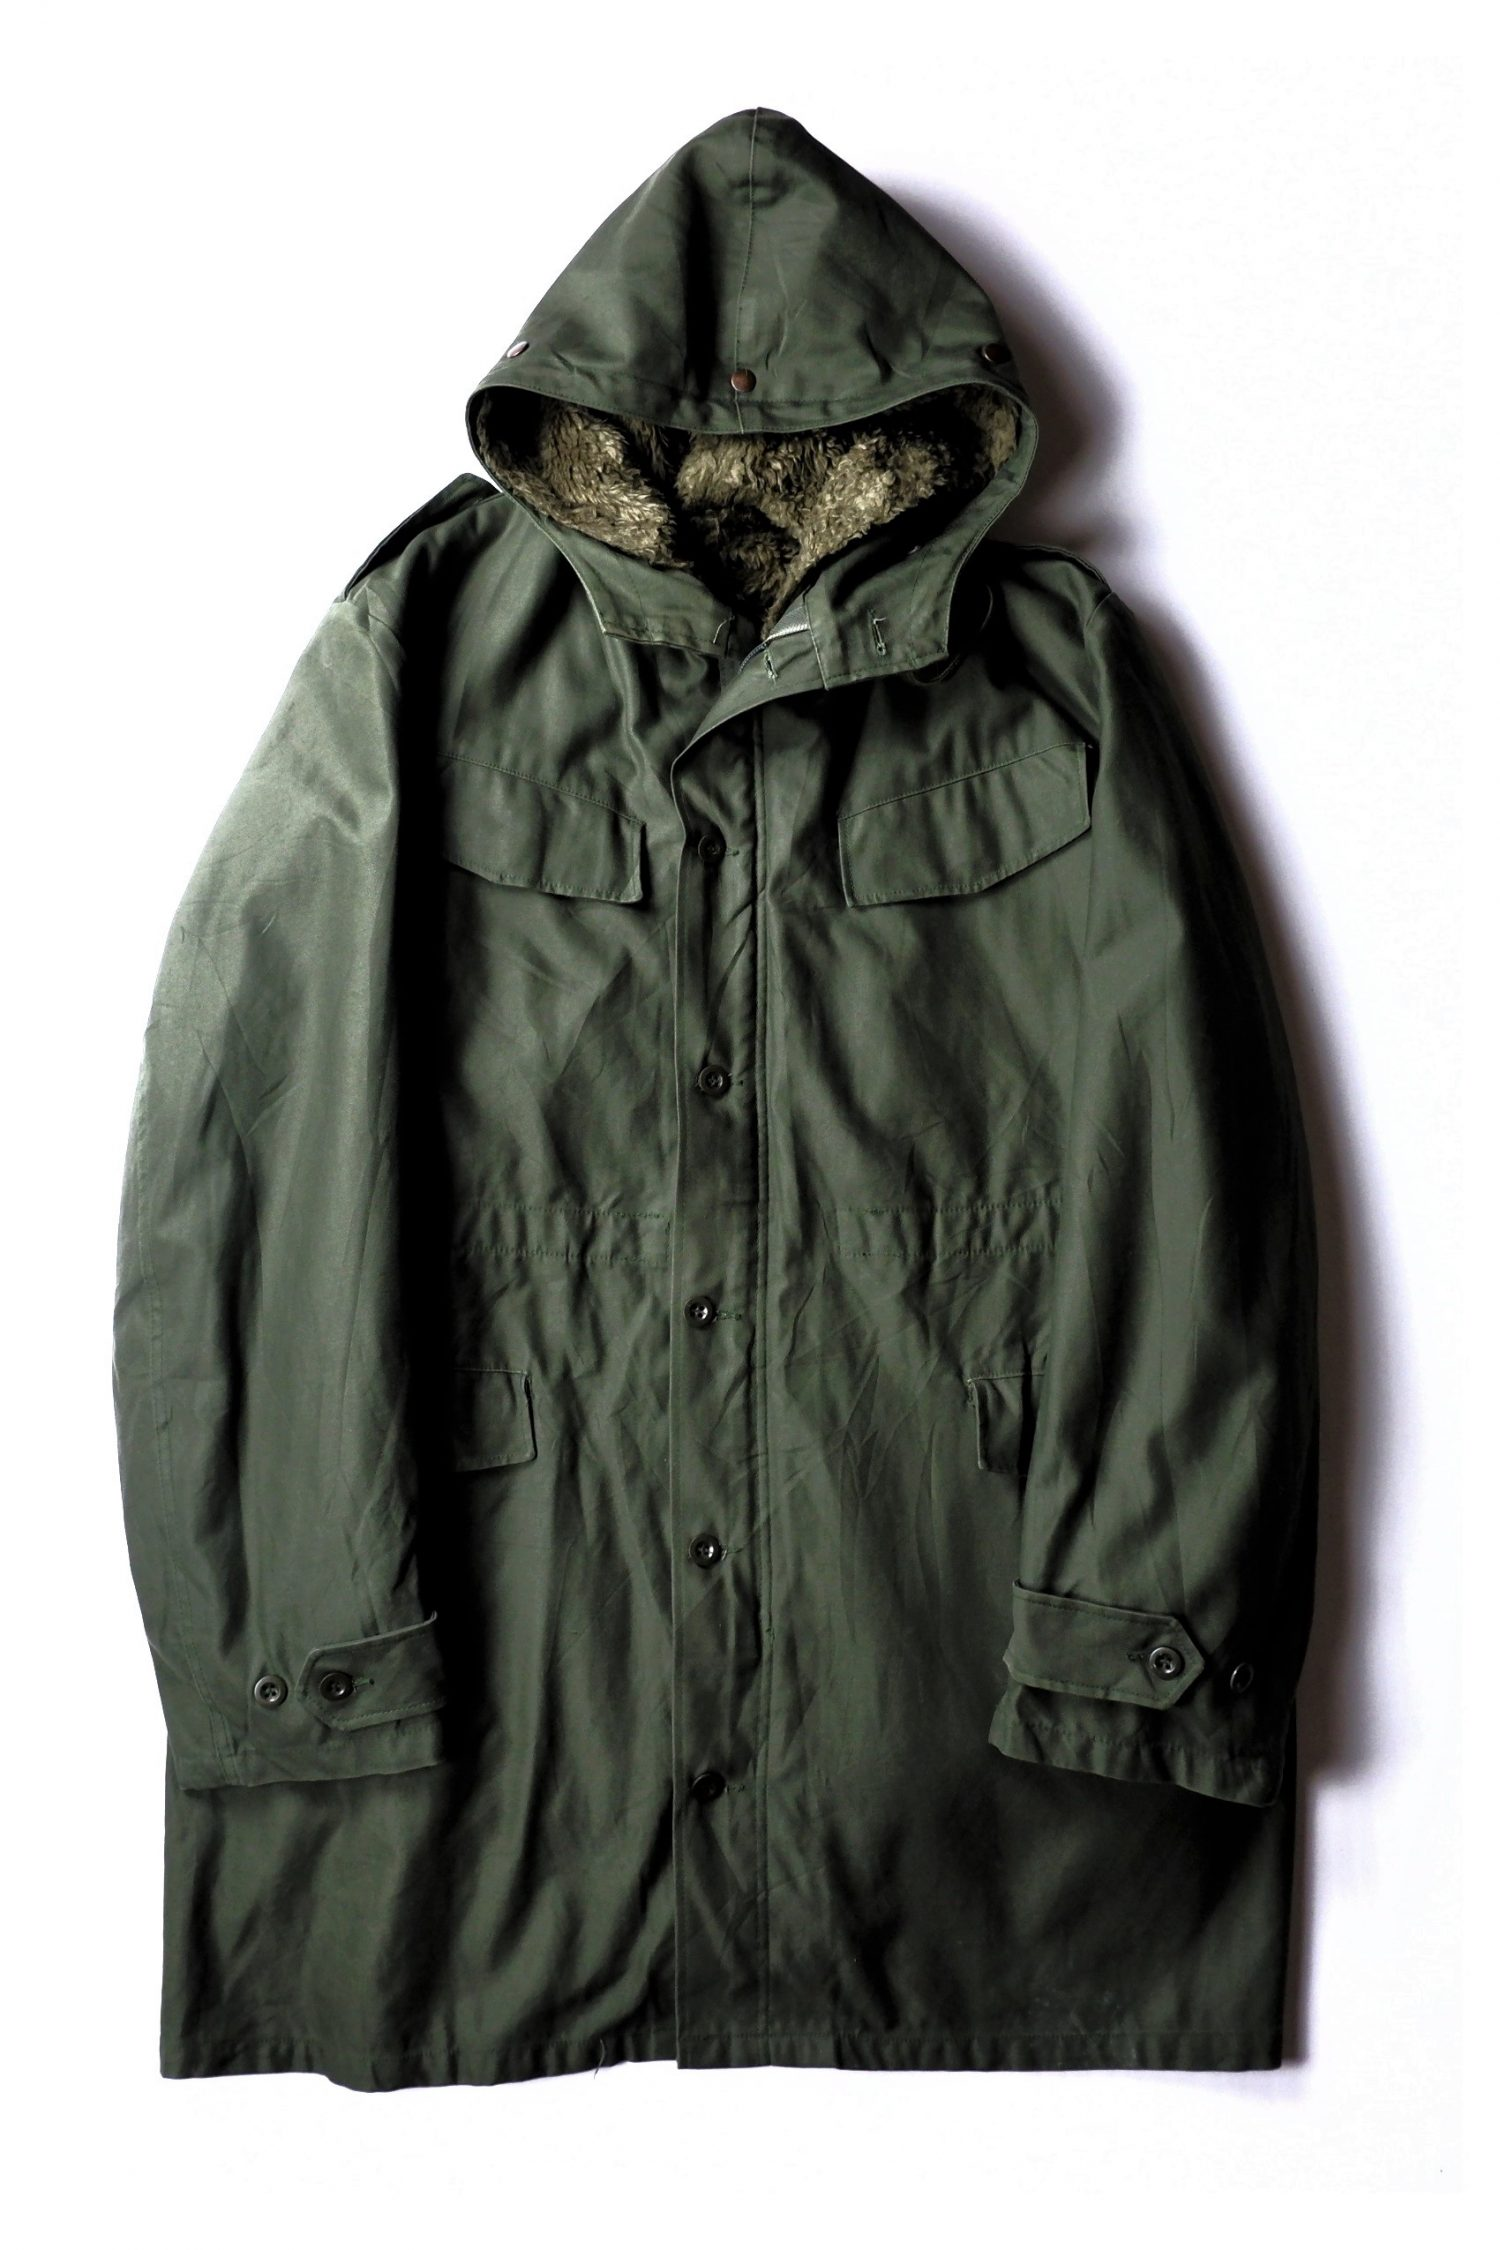 1987 German Military Field Parka